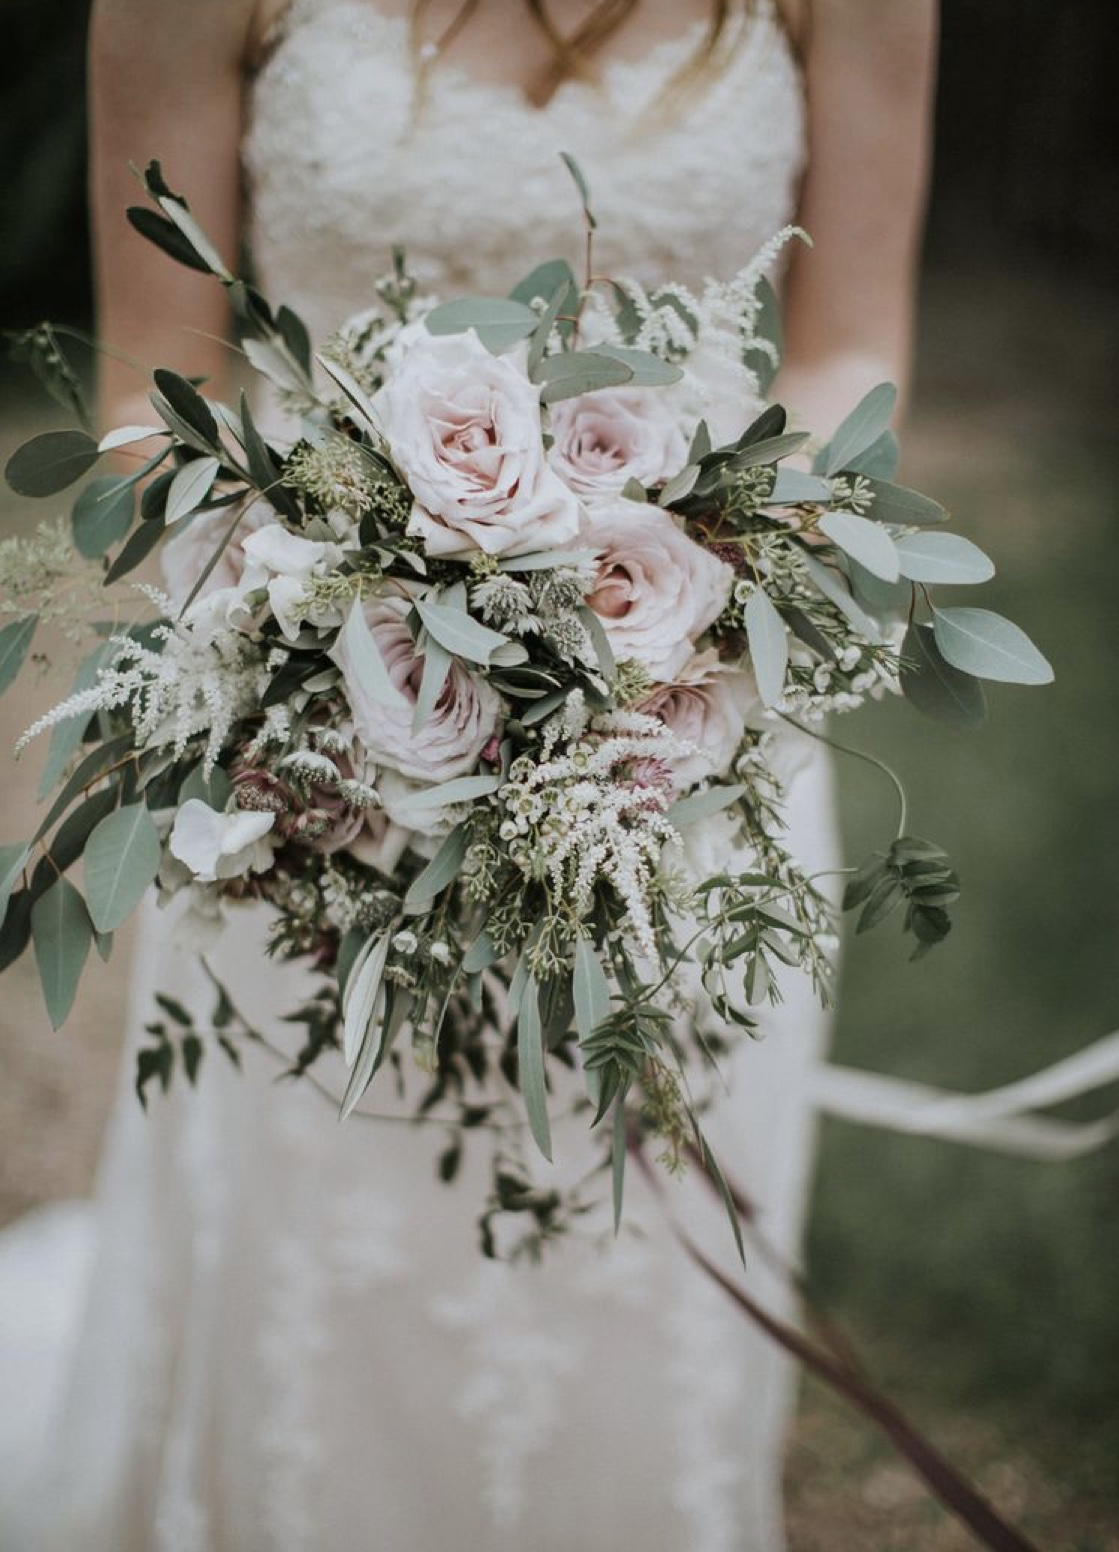 Florals for Events - Bridal bouquets, Bridesmaid bouquets, centerpieces, boutonnieres, corsages, flower crowns, cake decor, wreaths, etc. Fresh, dried or silk florals can be used!